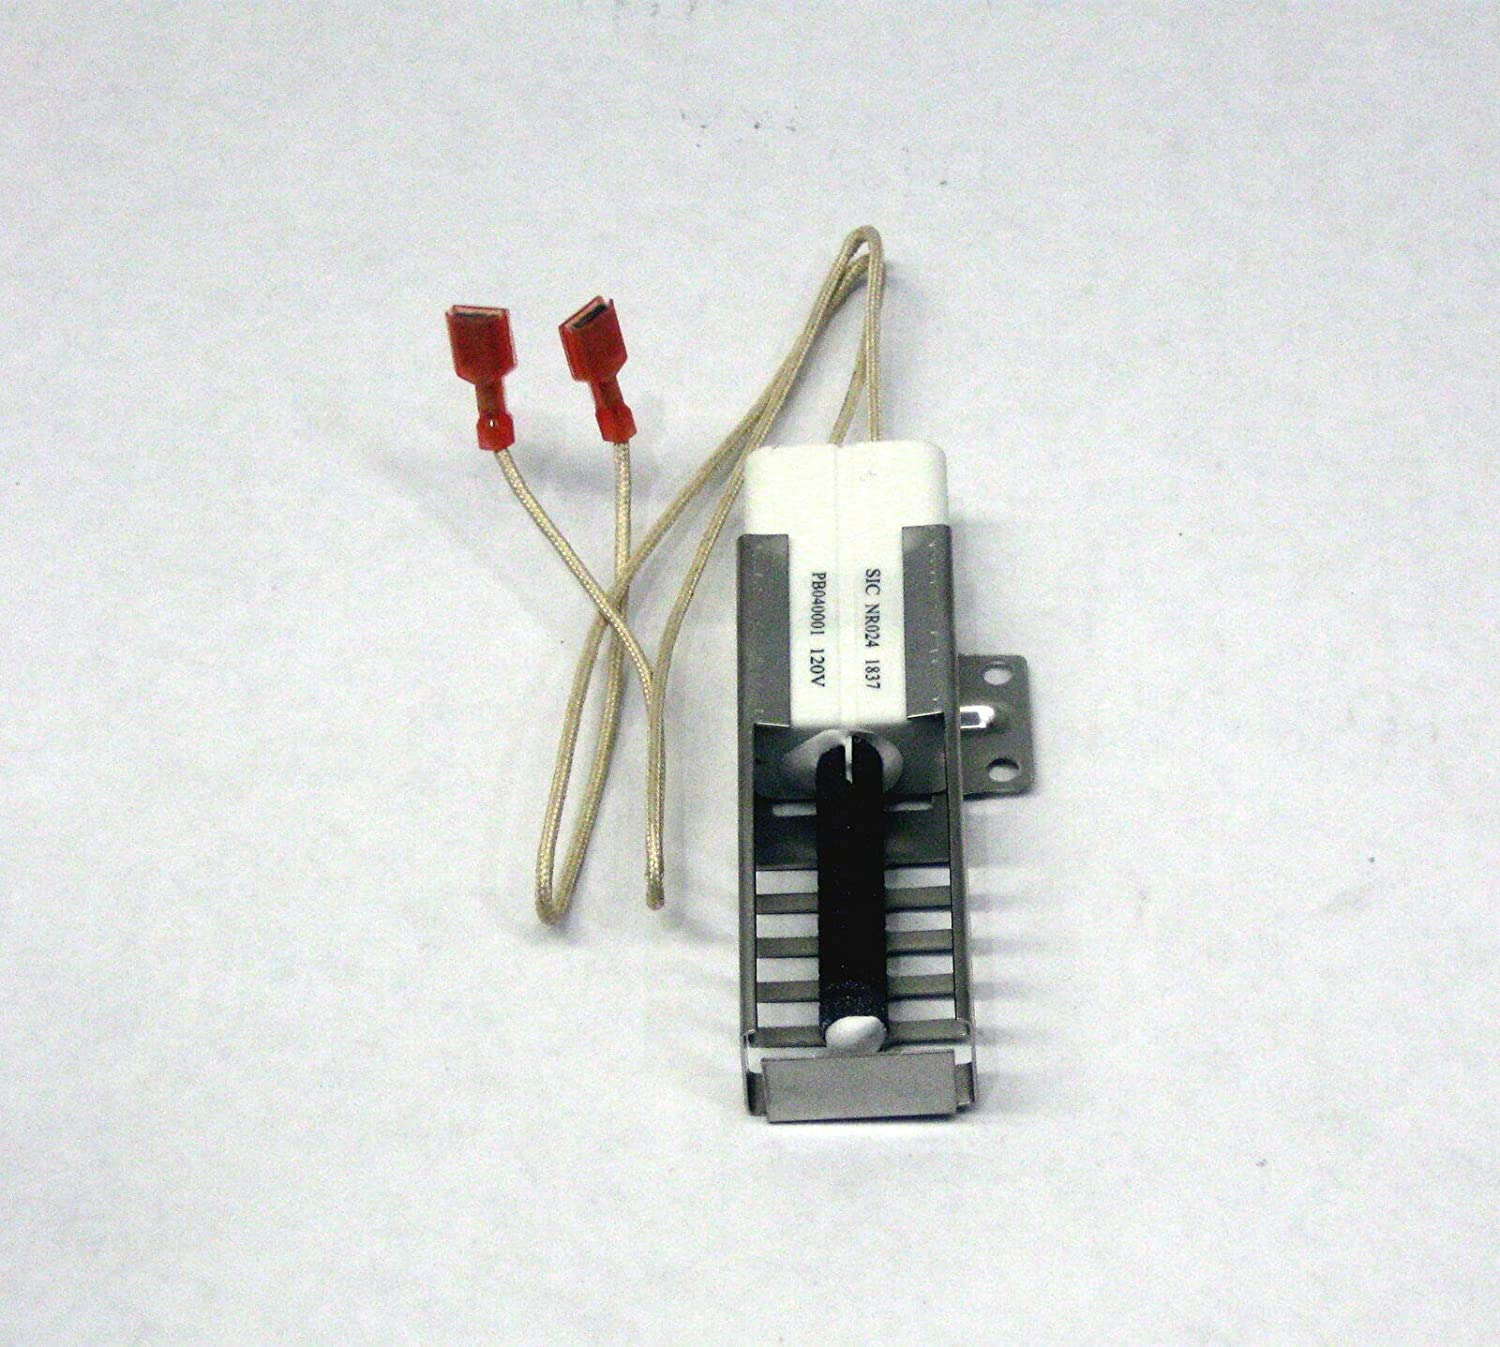 NEW part Gas Range Oven Ignitor for Viking Range replacement for PB040001 AR04001